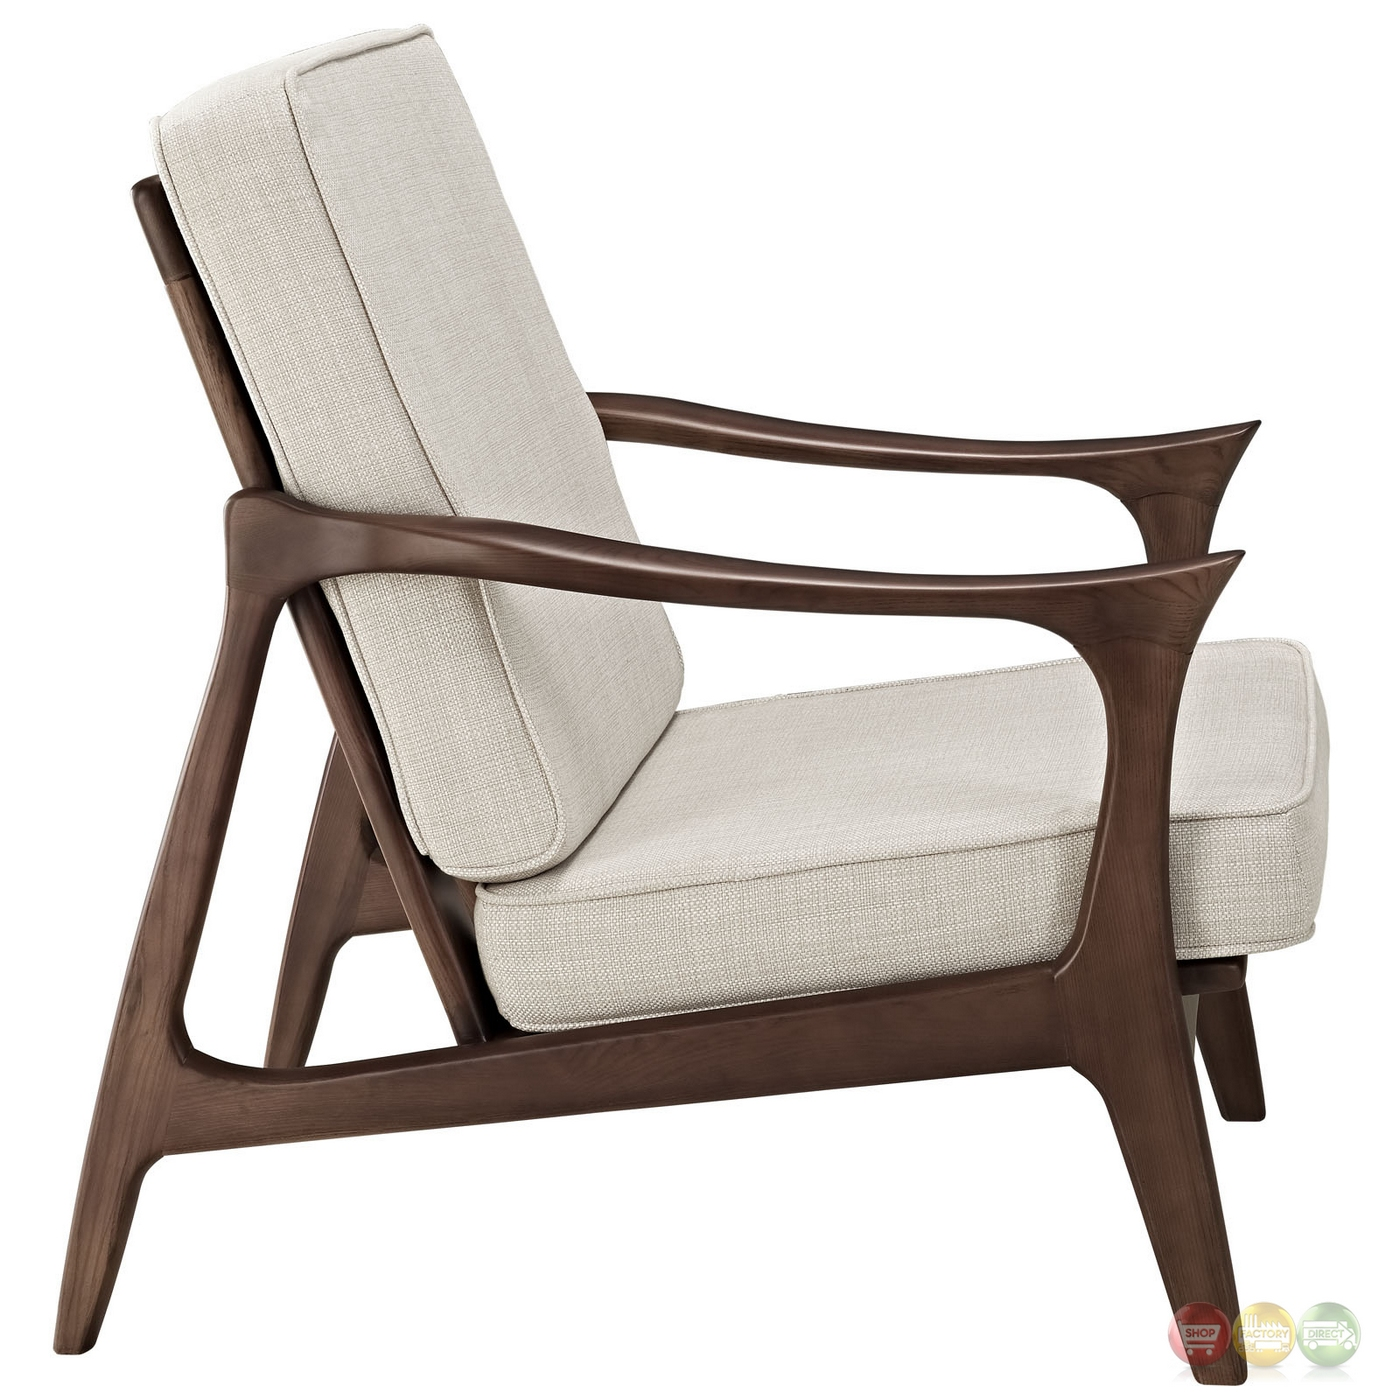 wooden lounge chairs top grain leather dining paddle contemporary chair with upholstered